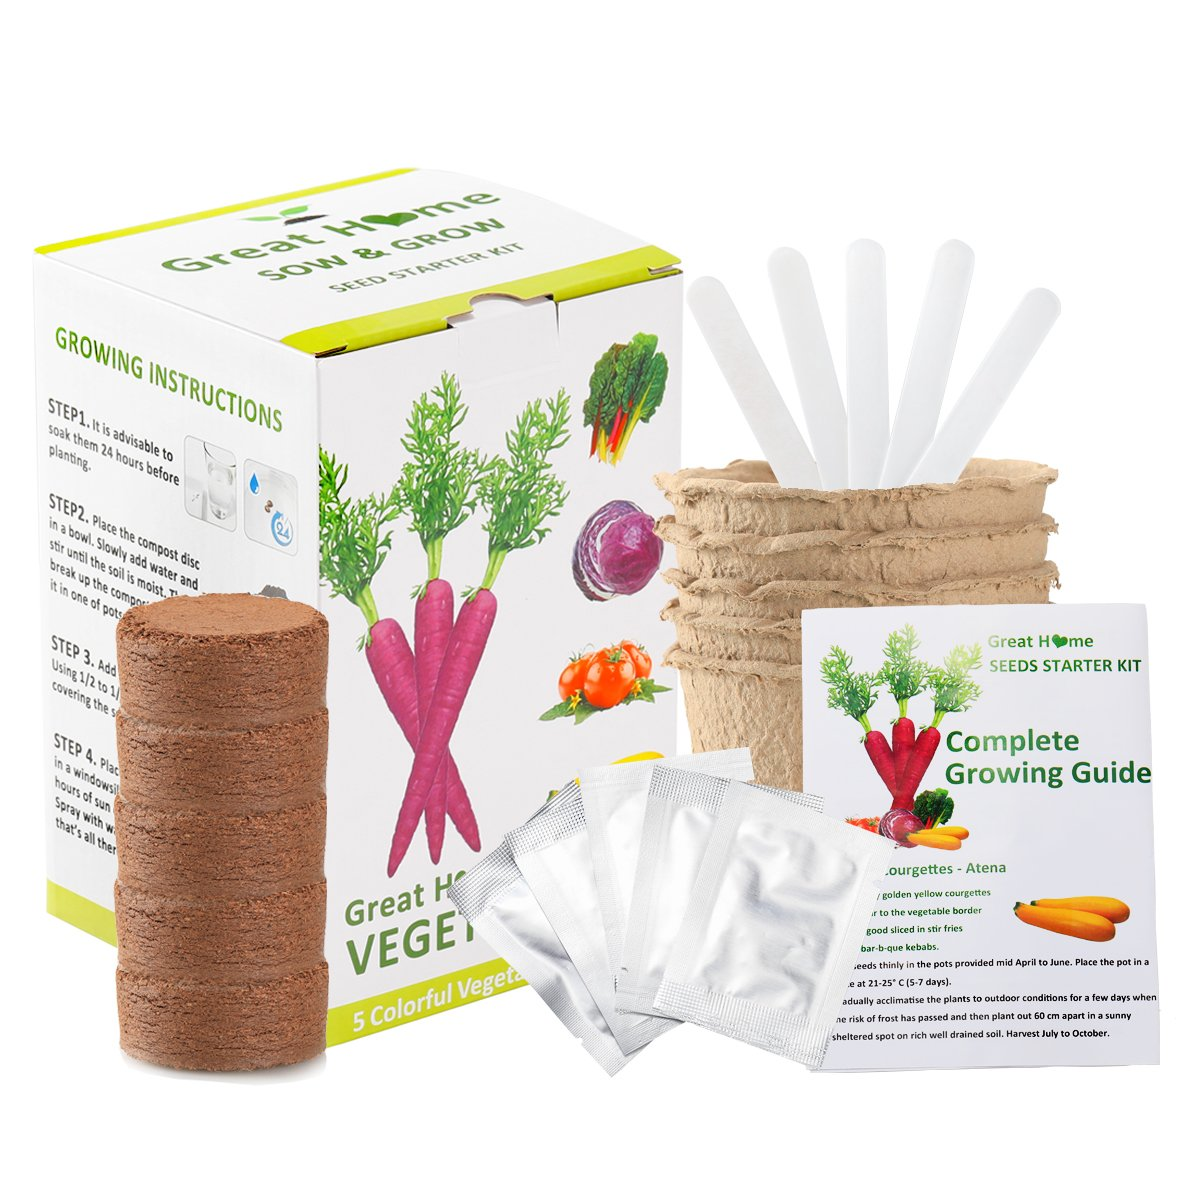 Magic Trio Peelers Set of 3 New Fruit & Vegetable Kitchen Starter Kit for Mom by Great Home (Ship From US)